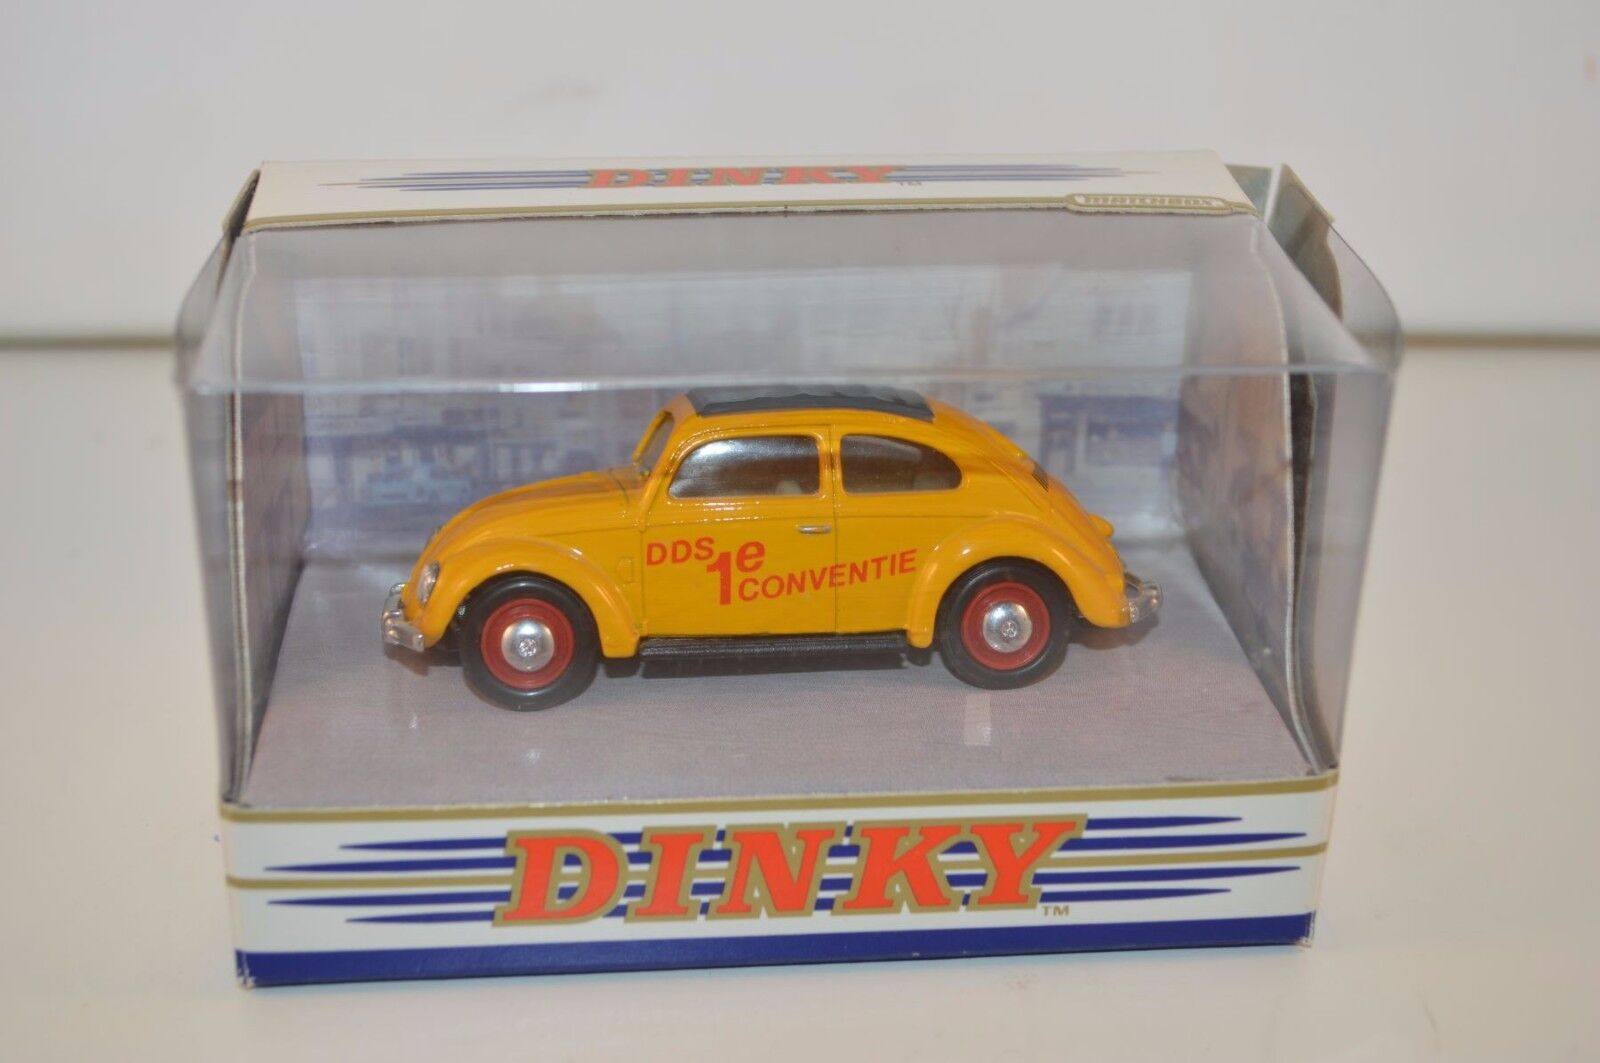 Dinky Matchbox DY6-C Volkswagen KAFER Beetle DDS Code 3 jaune Mint boxed